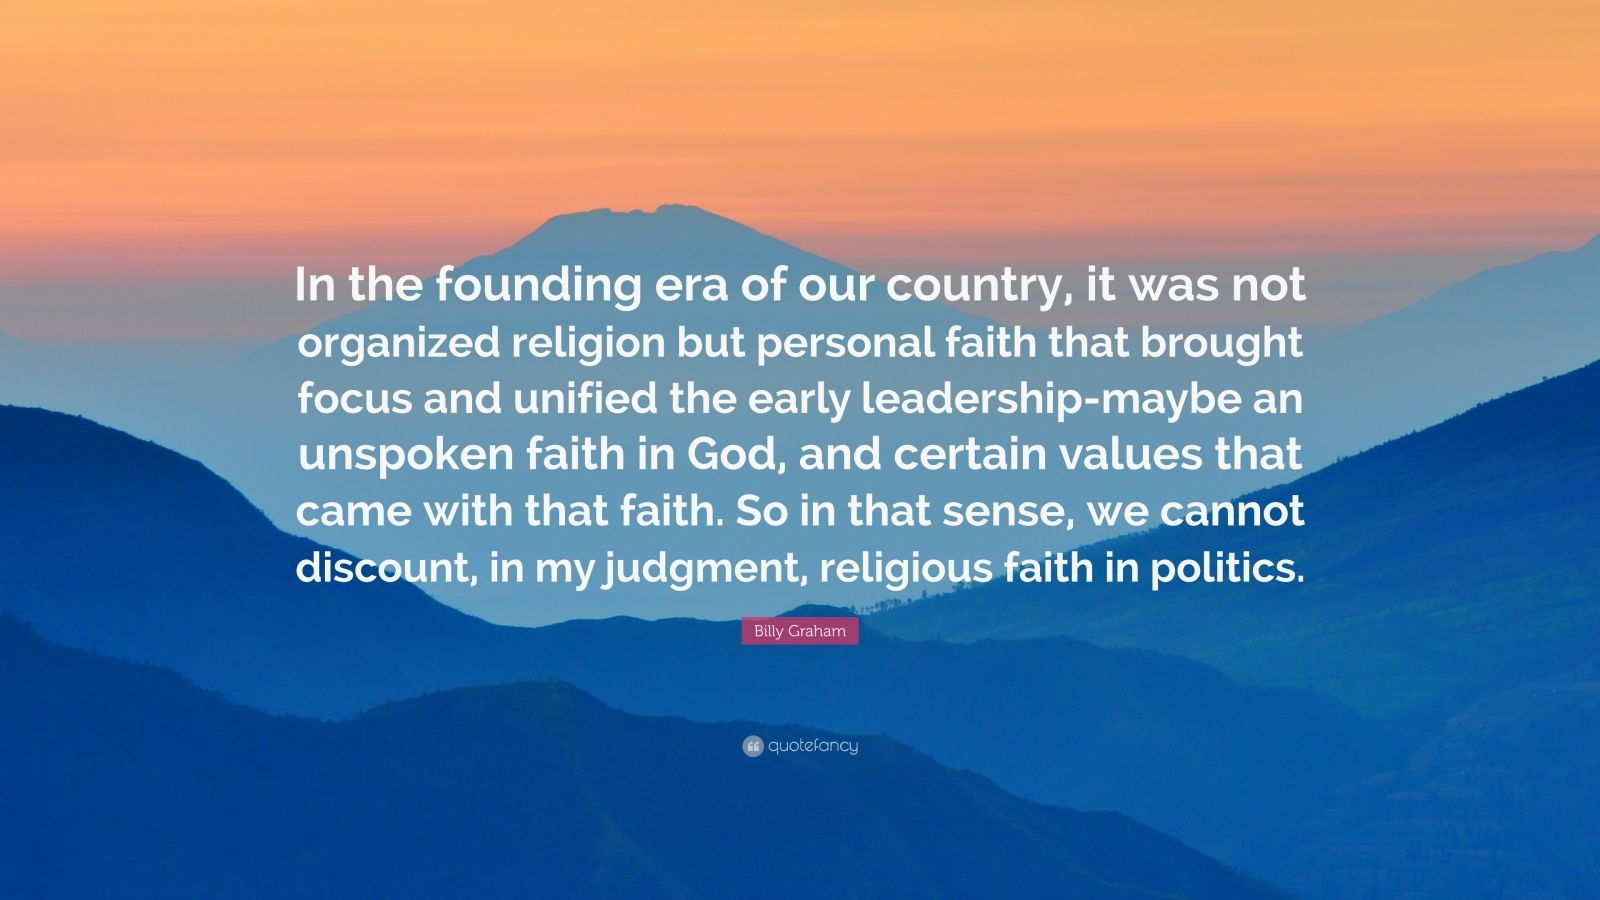 """Billy Graham Quote: """"In the founding era of our country, it was not organized religion but personal faith that brought focus and unified the early leadership-maybe an unspoken faith in God, and certain values that came with that faith. So in that sense, we cannot discount, in my judgment, religious faith in politics."""""""